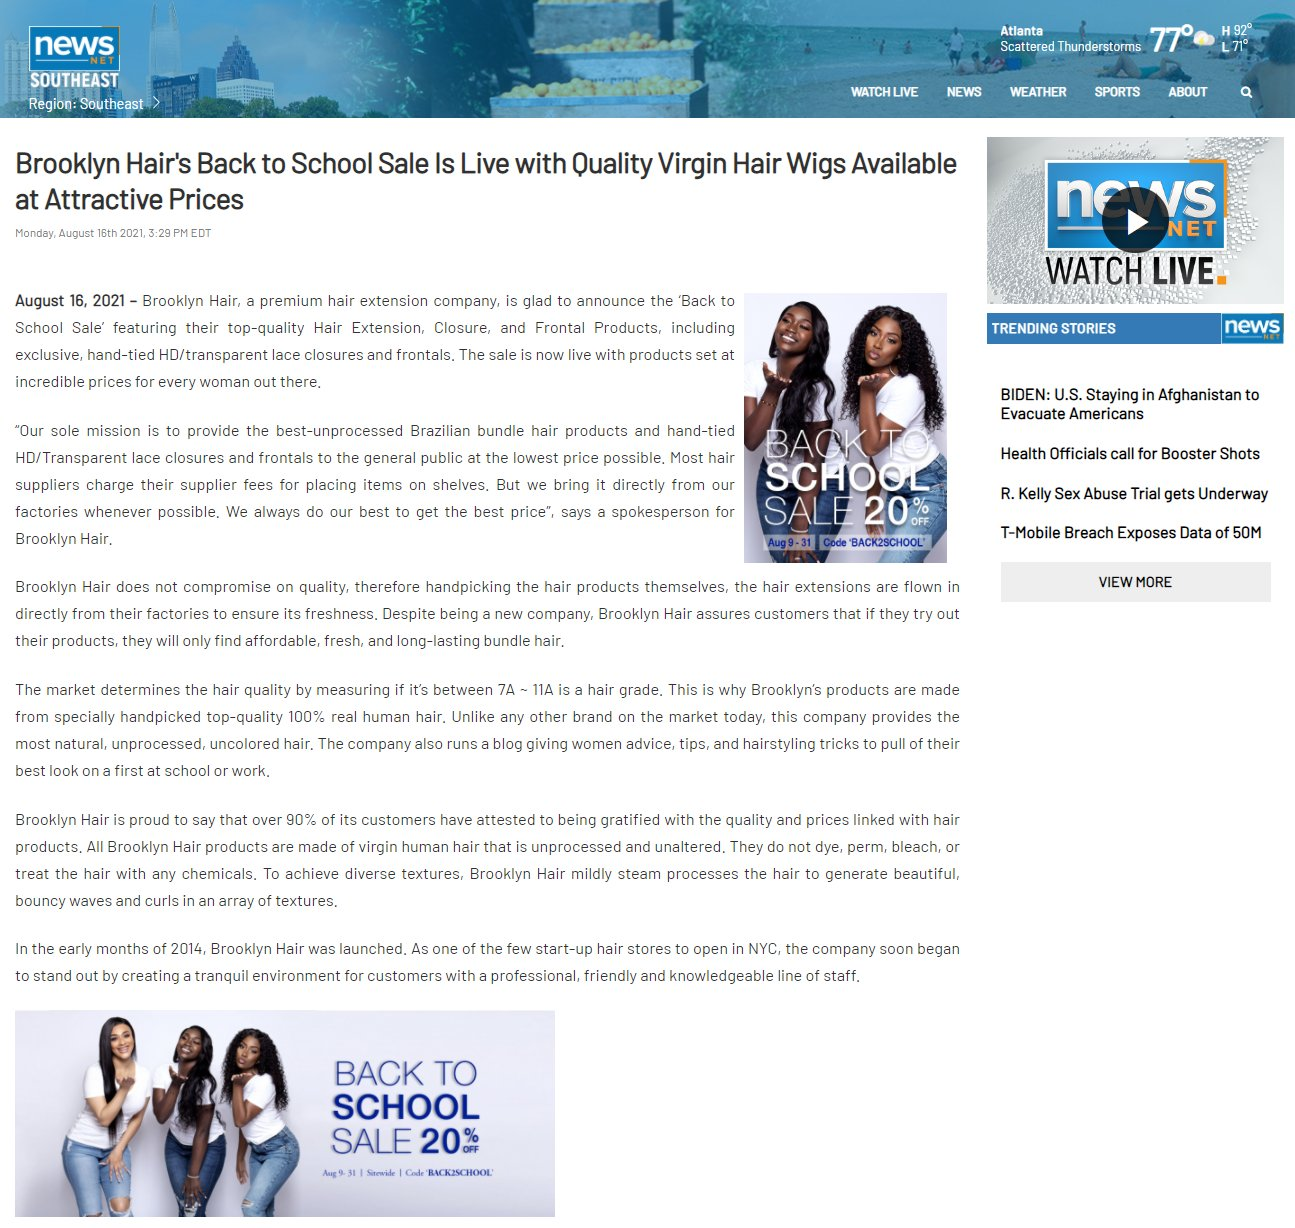 Brooklyn Hair's Back to School Sale Is Live with Quality Virgin Hair Wigs Available at Attractive Prices